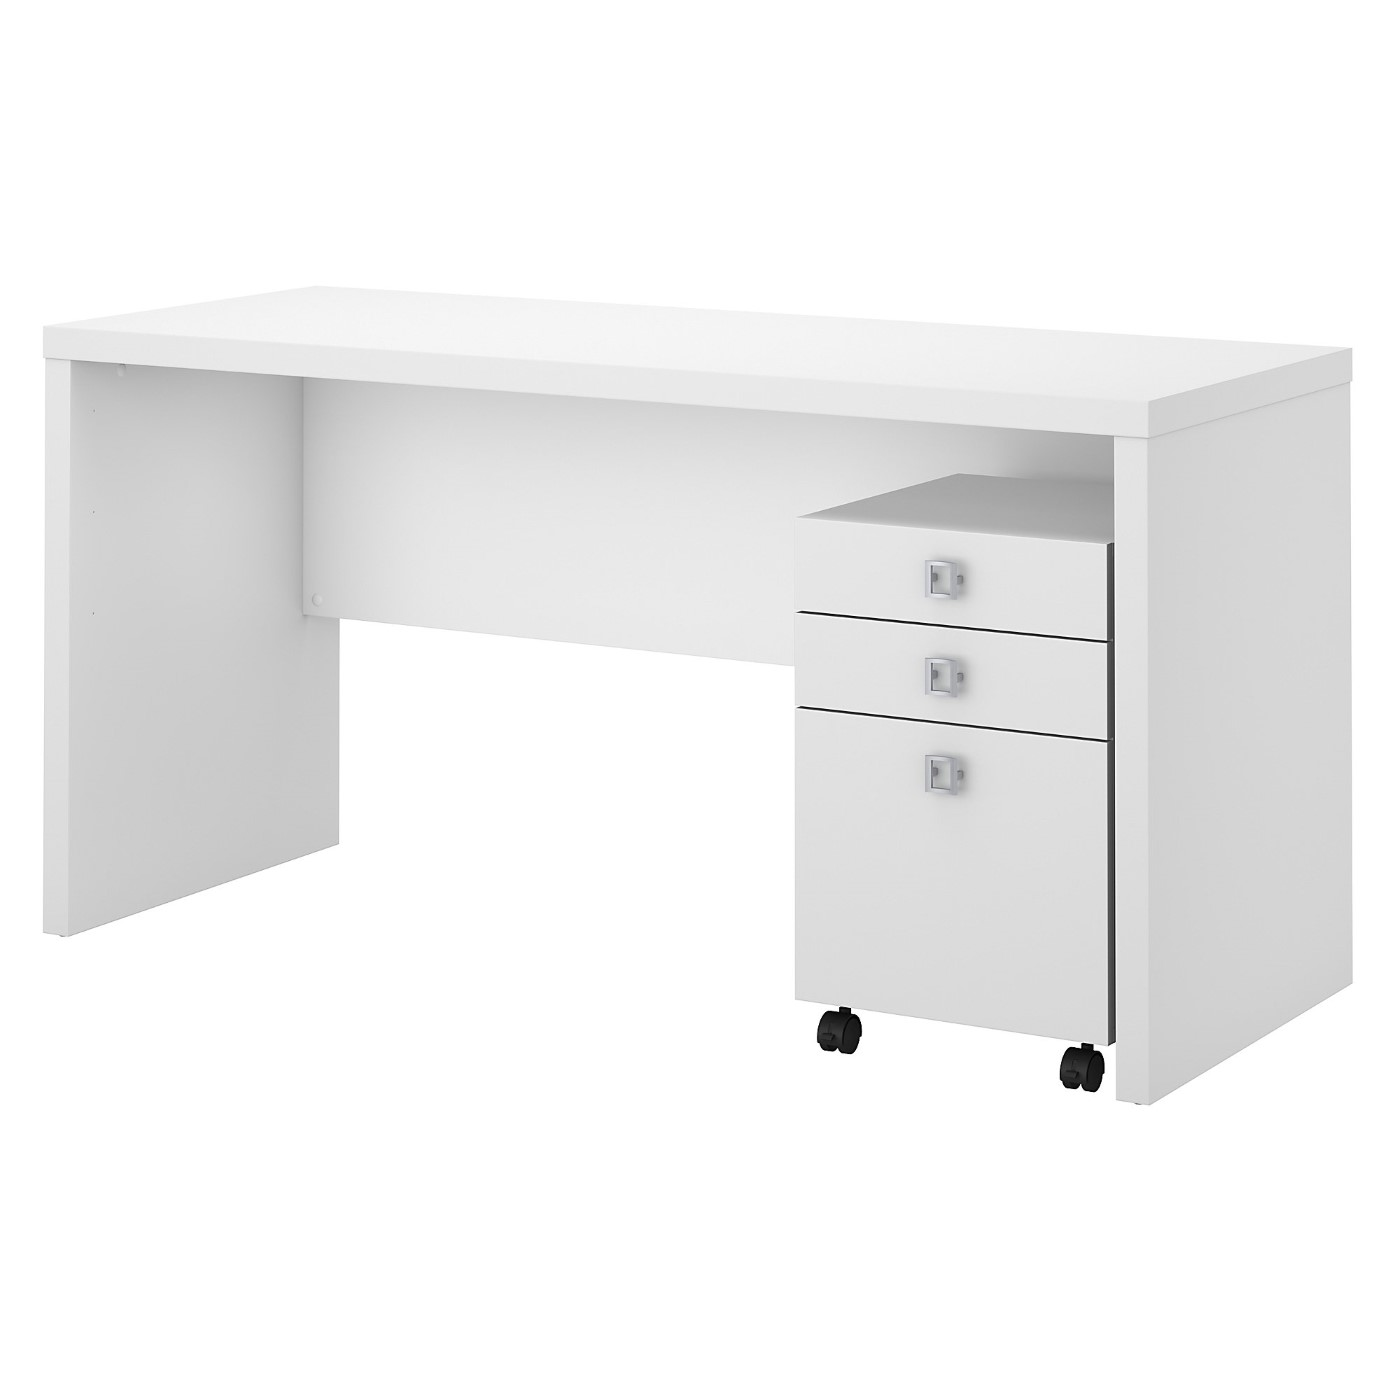 OFFICE BY KATHY IRELAND ECHO CREDENZA DESK WITH MOBILE FILE CABINET. FREE SHIPPING